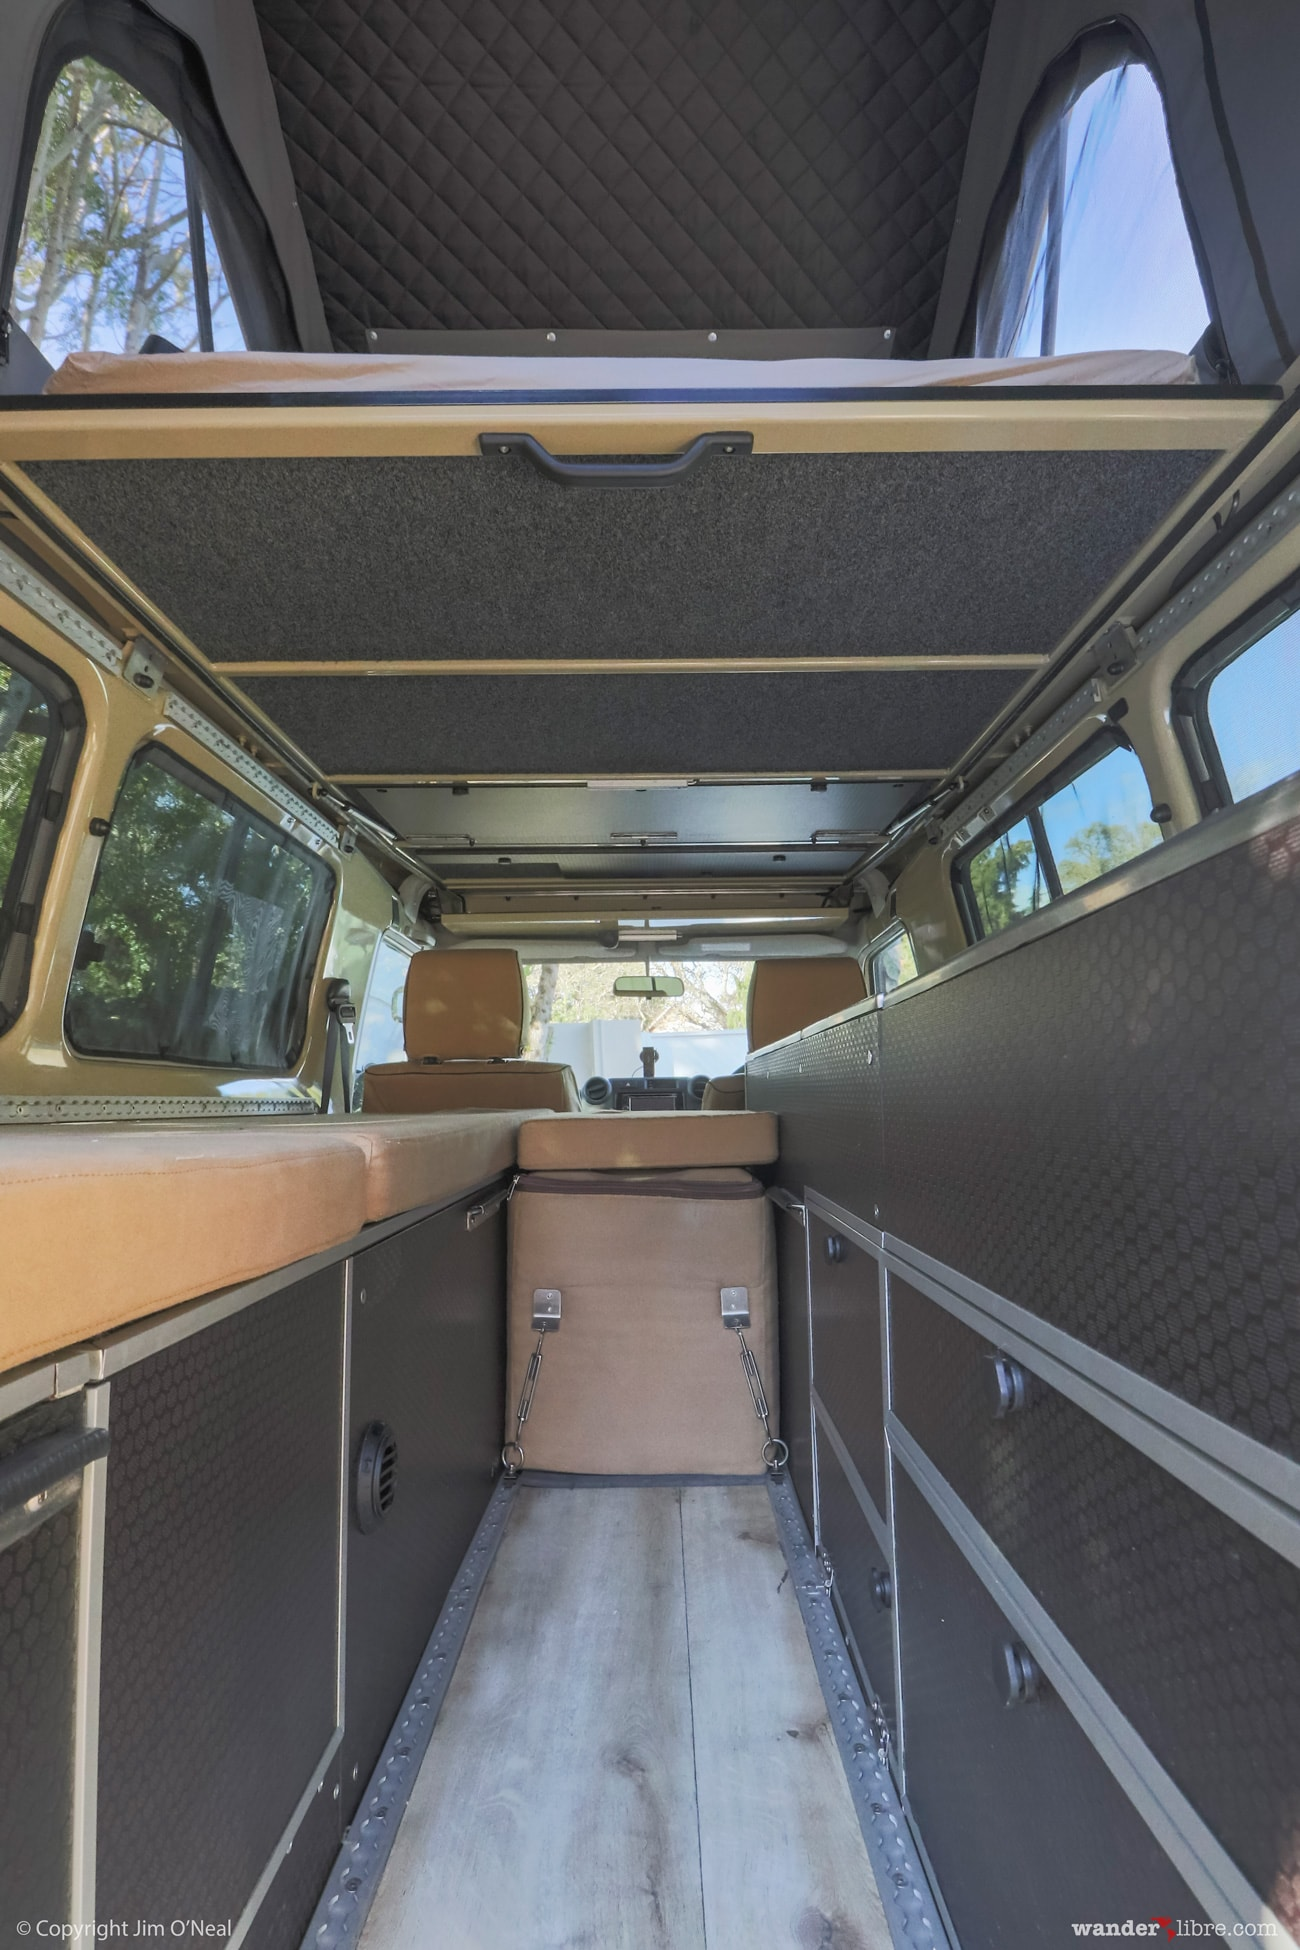 Land Cruiser Troopy Camper Conversion Part 4 Of Wander Libre Toyota 70 Pick Up Outback Adventures Drop Down Table Troop Carrier Pop Top Roof With Bed